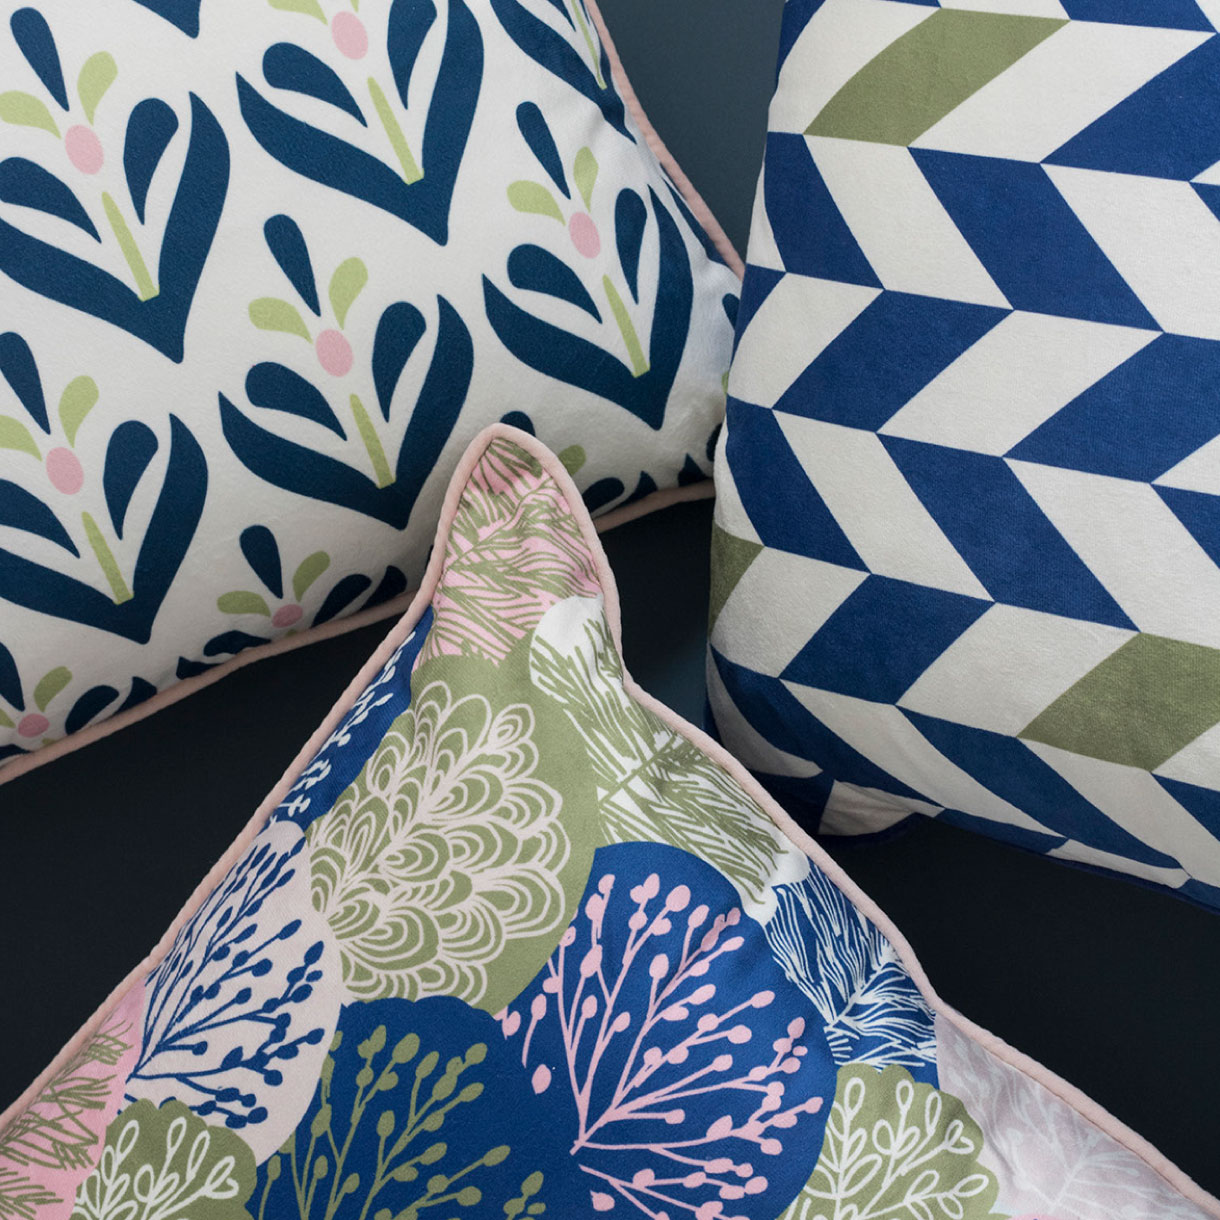 Principle brand agency Dublin Woodie's homewares brand design project scandi collection cushions